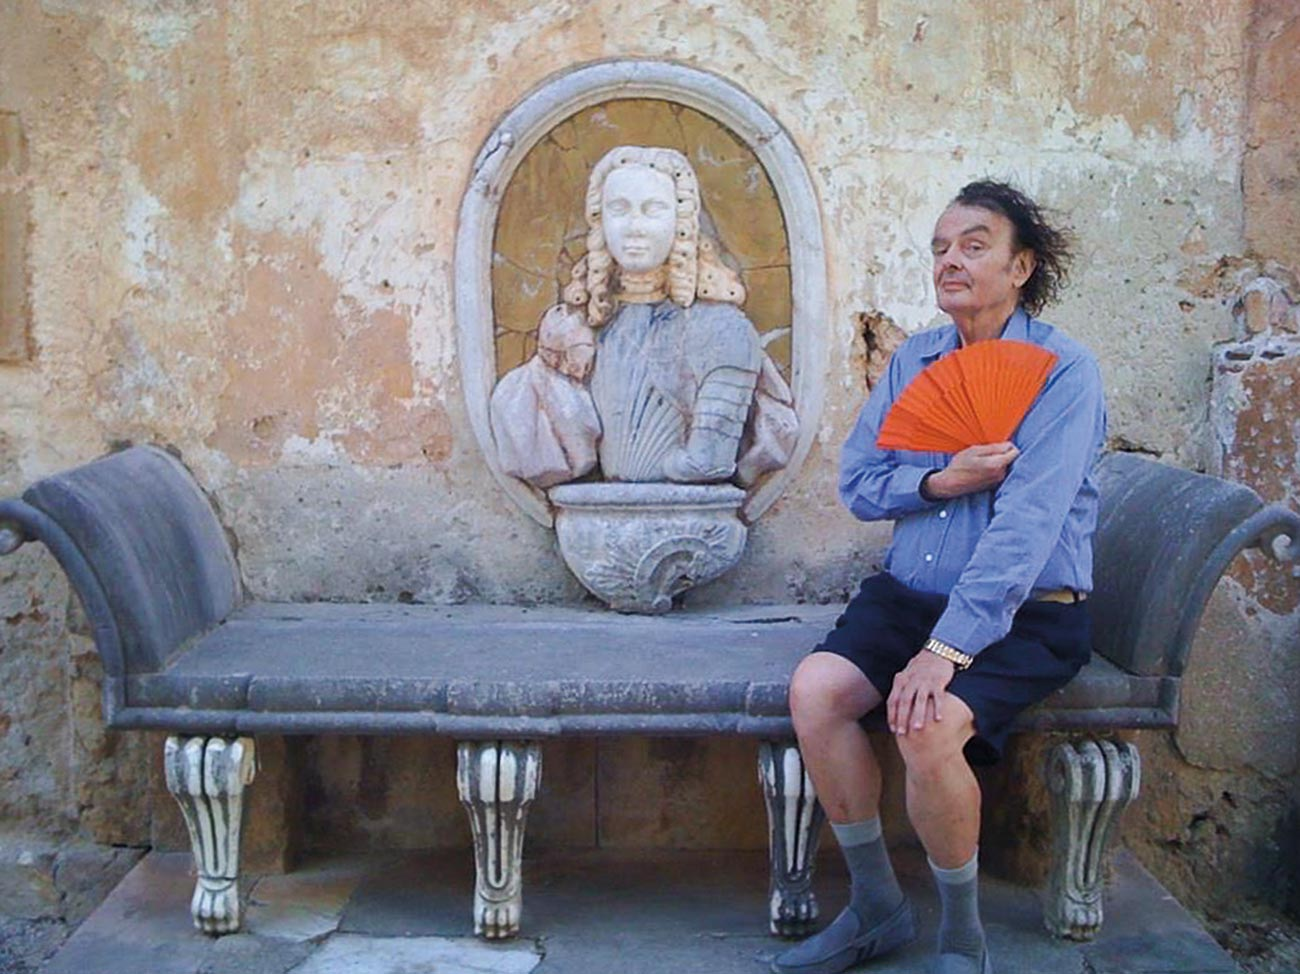 Ira posing with orange fan next to garden bust on stone bench